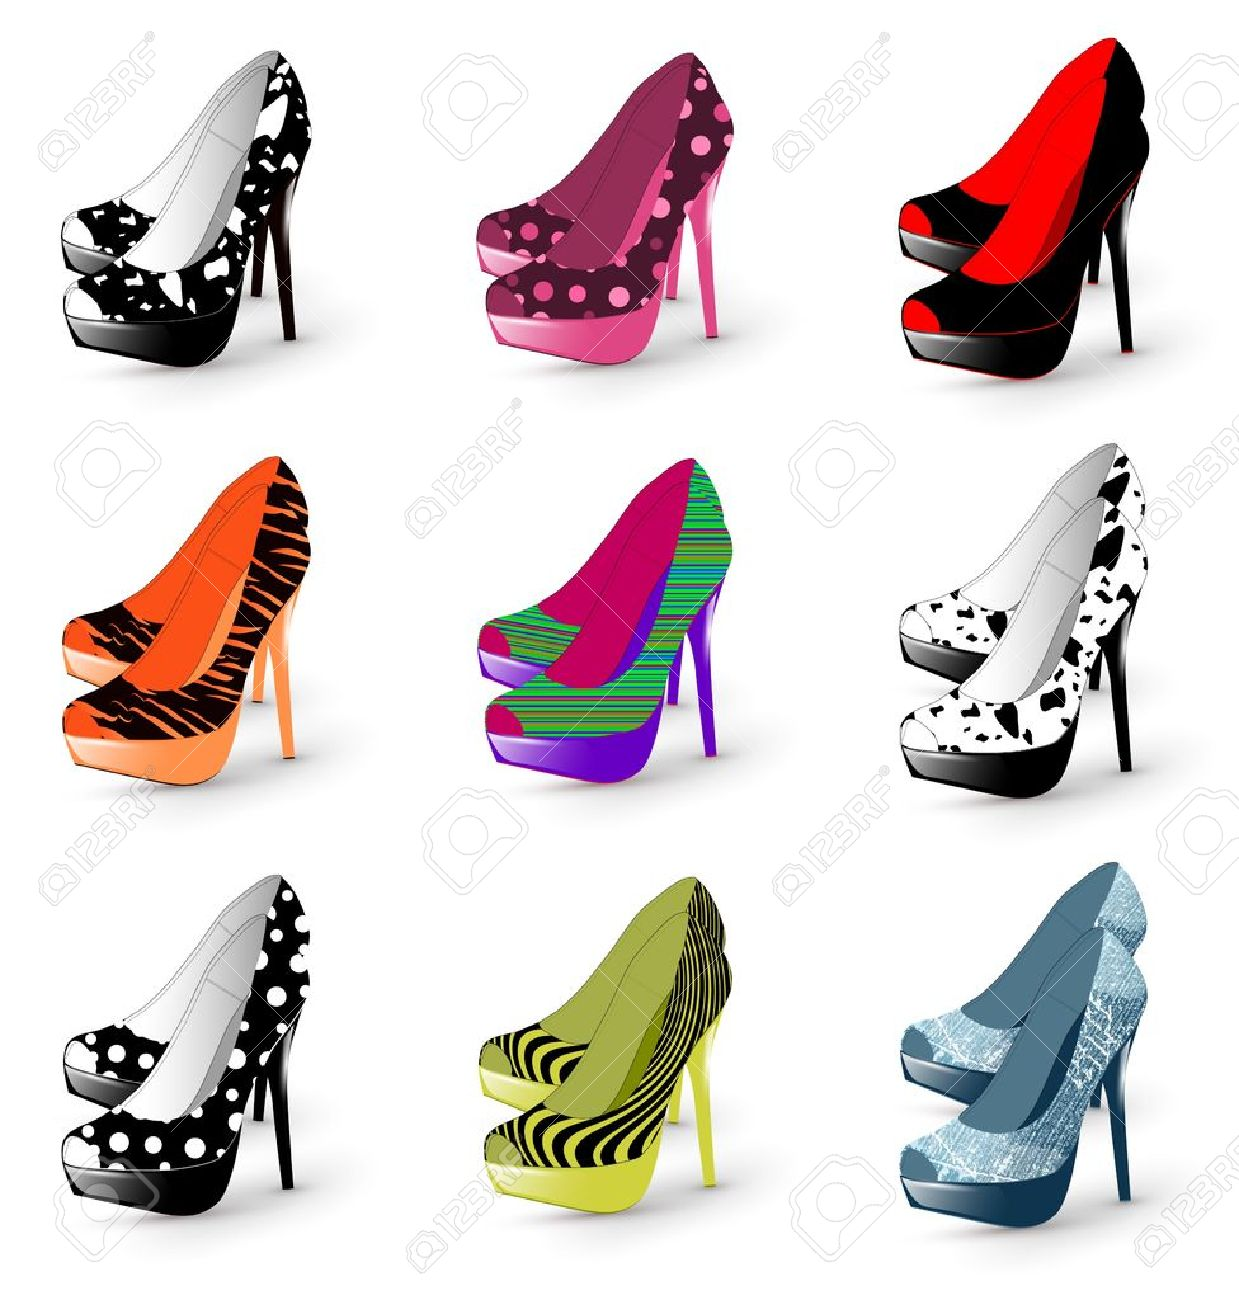 Illustration of fashion high heel woman shoes collection - 10415854